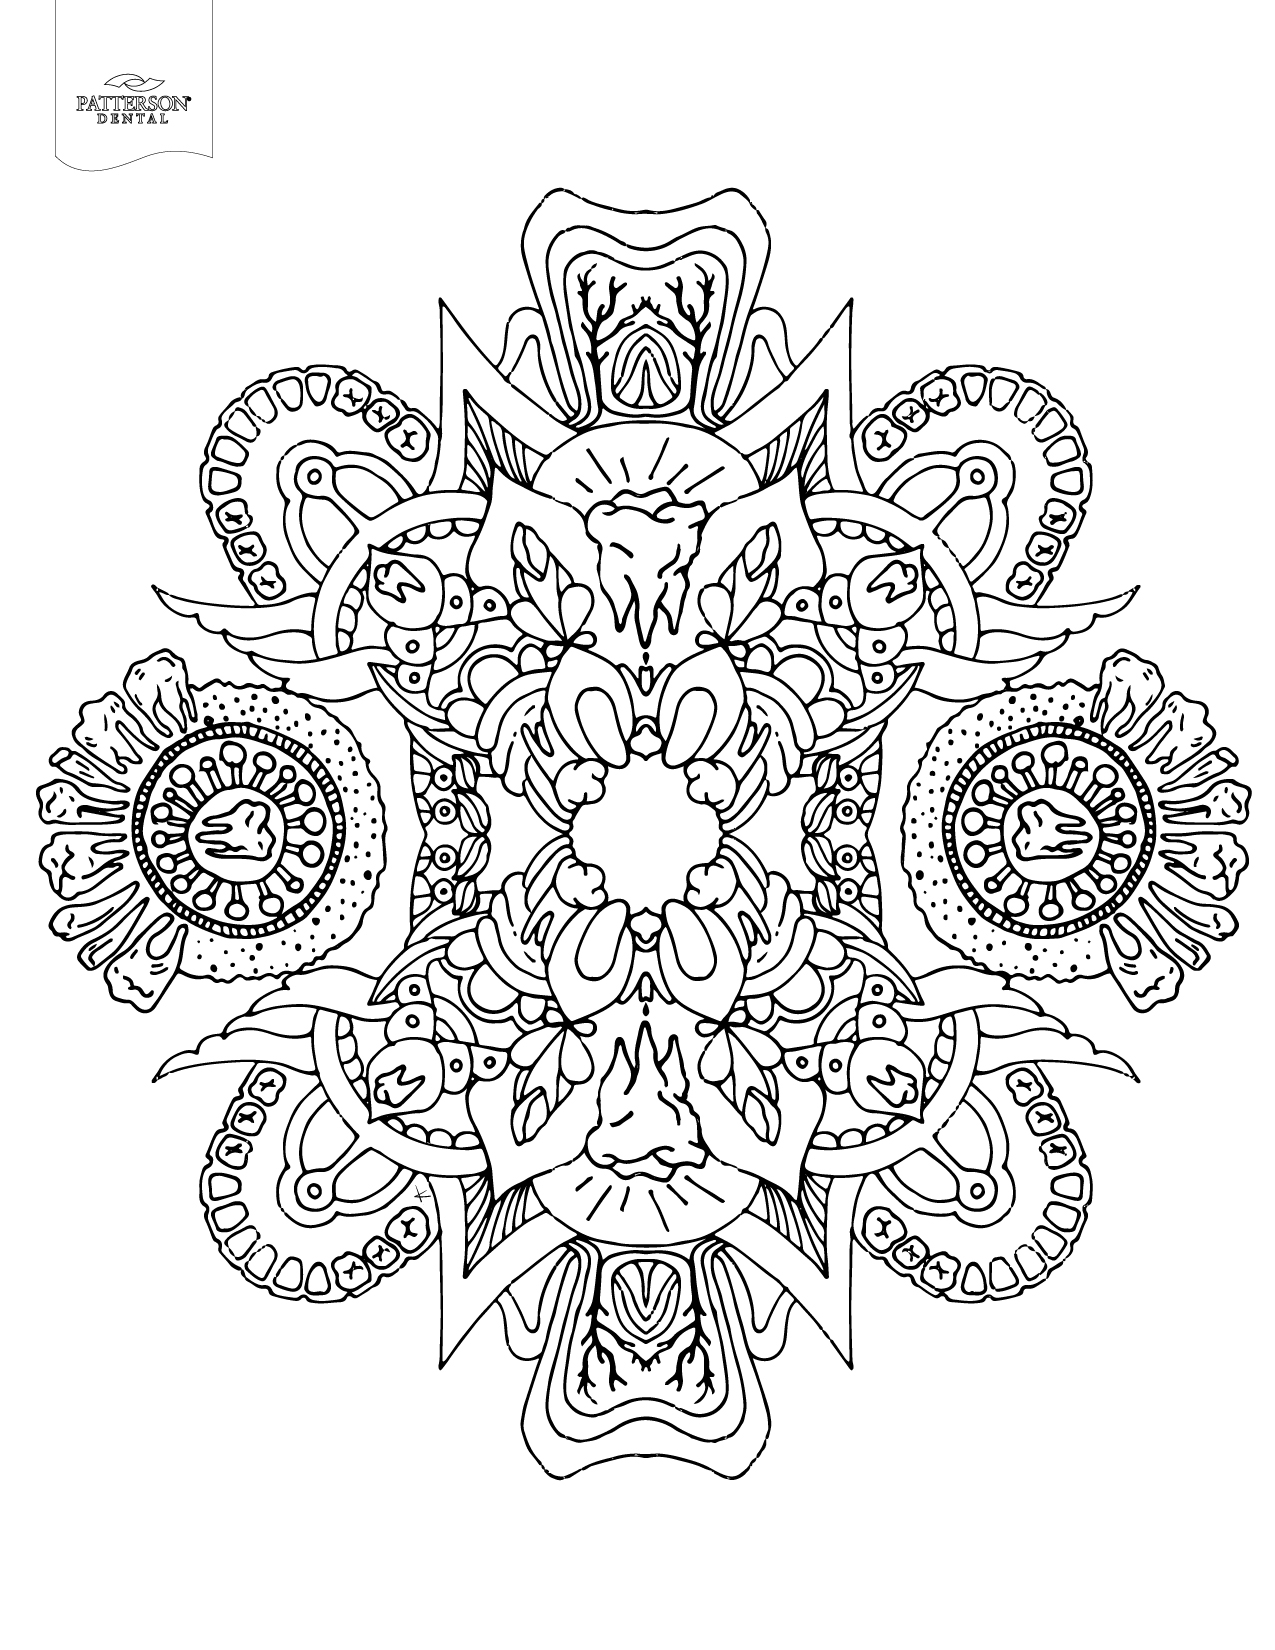 full size coloring pages full size coloring pages for adults at getcoloringscom full coloring pages size